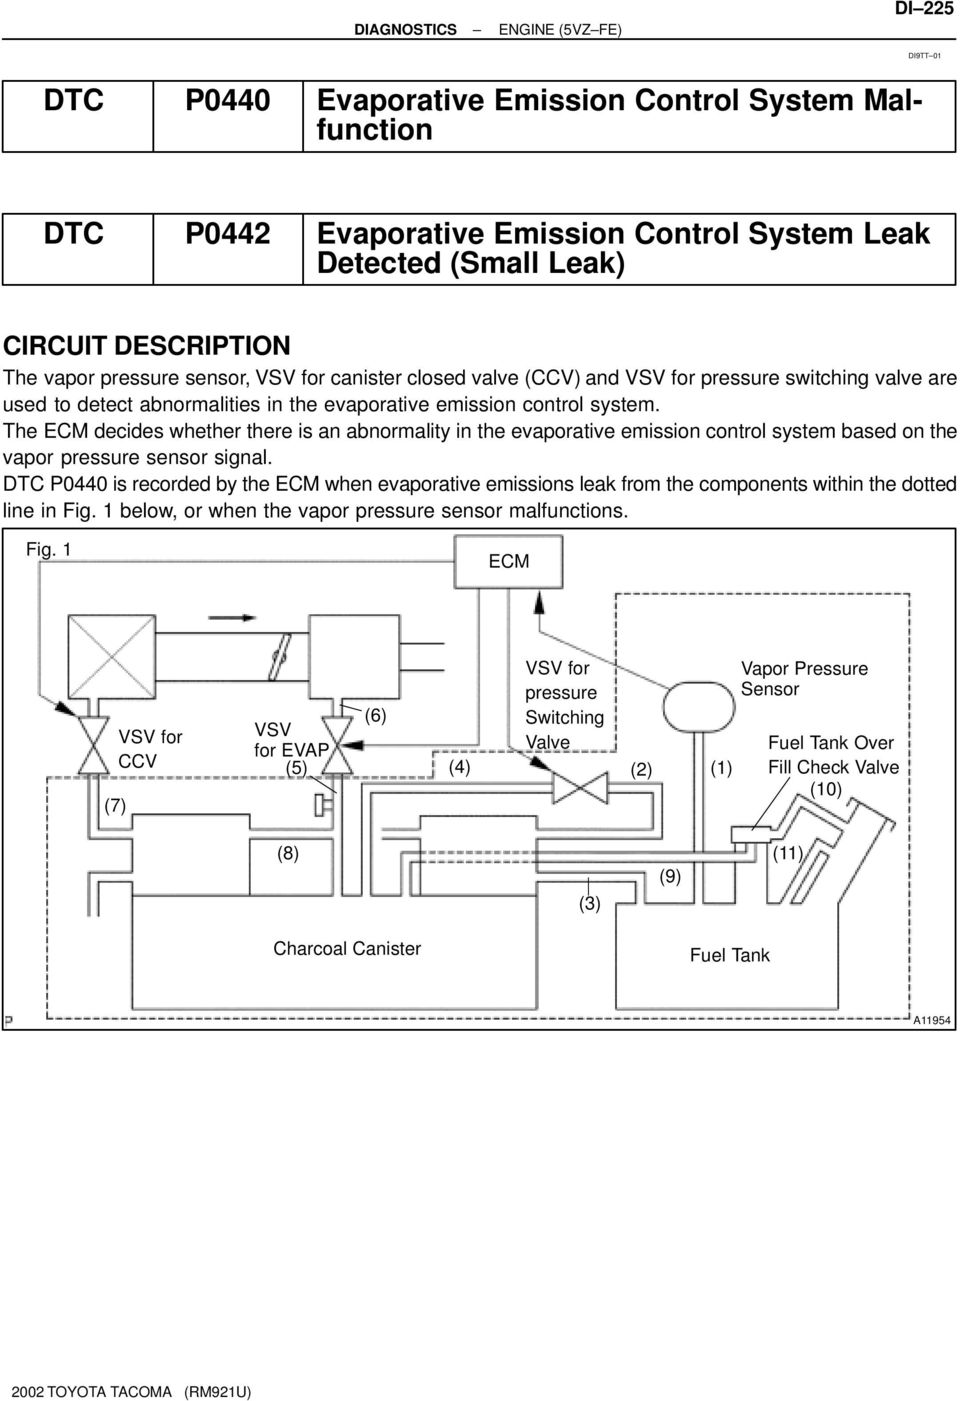 Dtc P0440 Evaporative Emission Control System Malfunction P0442 5vzfe Wiring Diagram The Ecm Decides Whether There Is An Abnormality In Based On